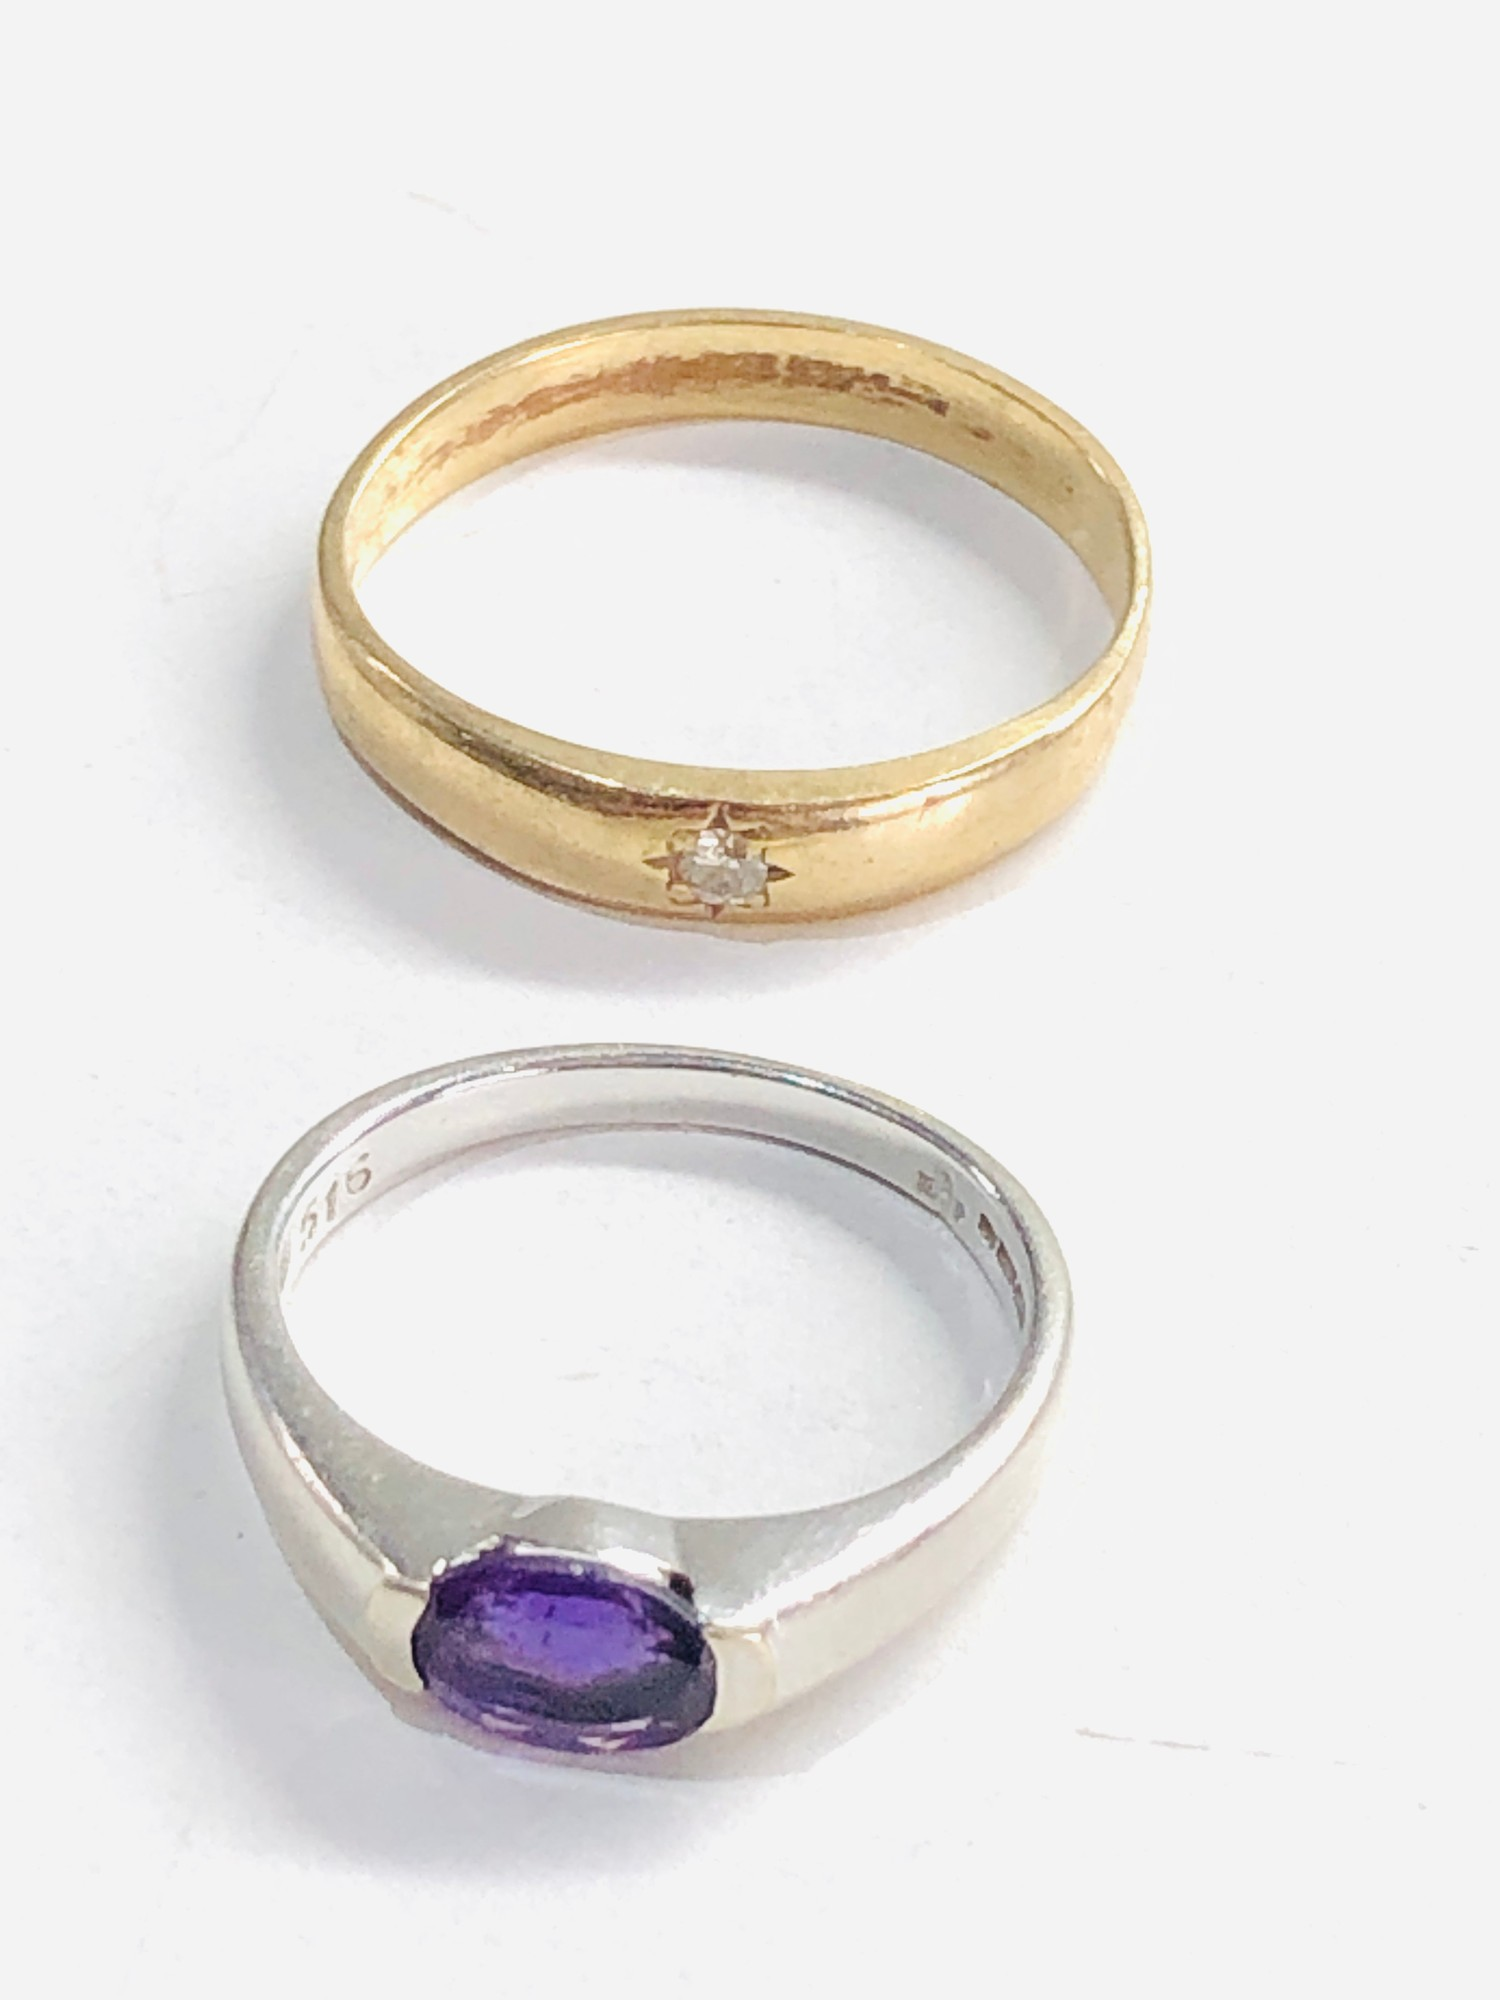 2 x 9ct gold diamond ring and white gold amethyst ring 4.8g